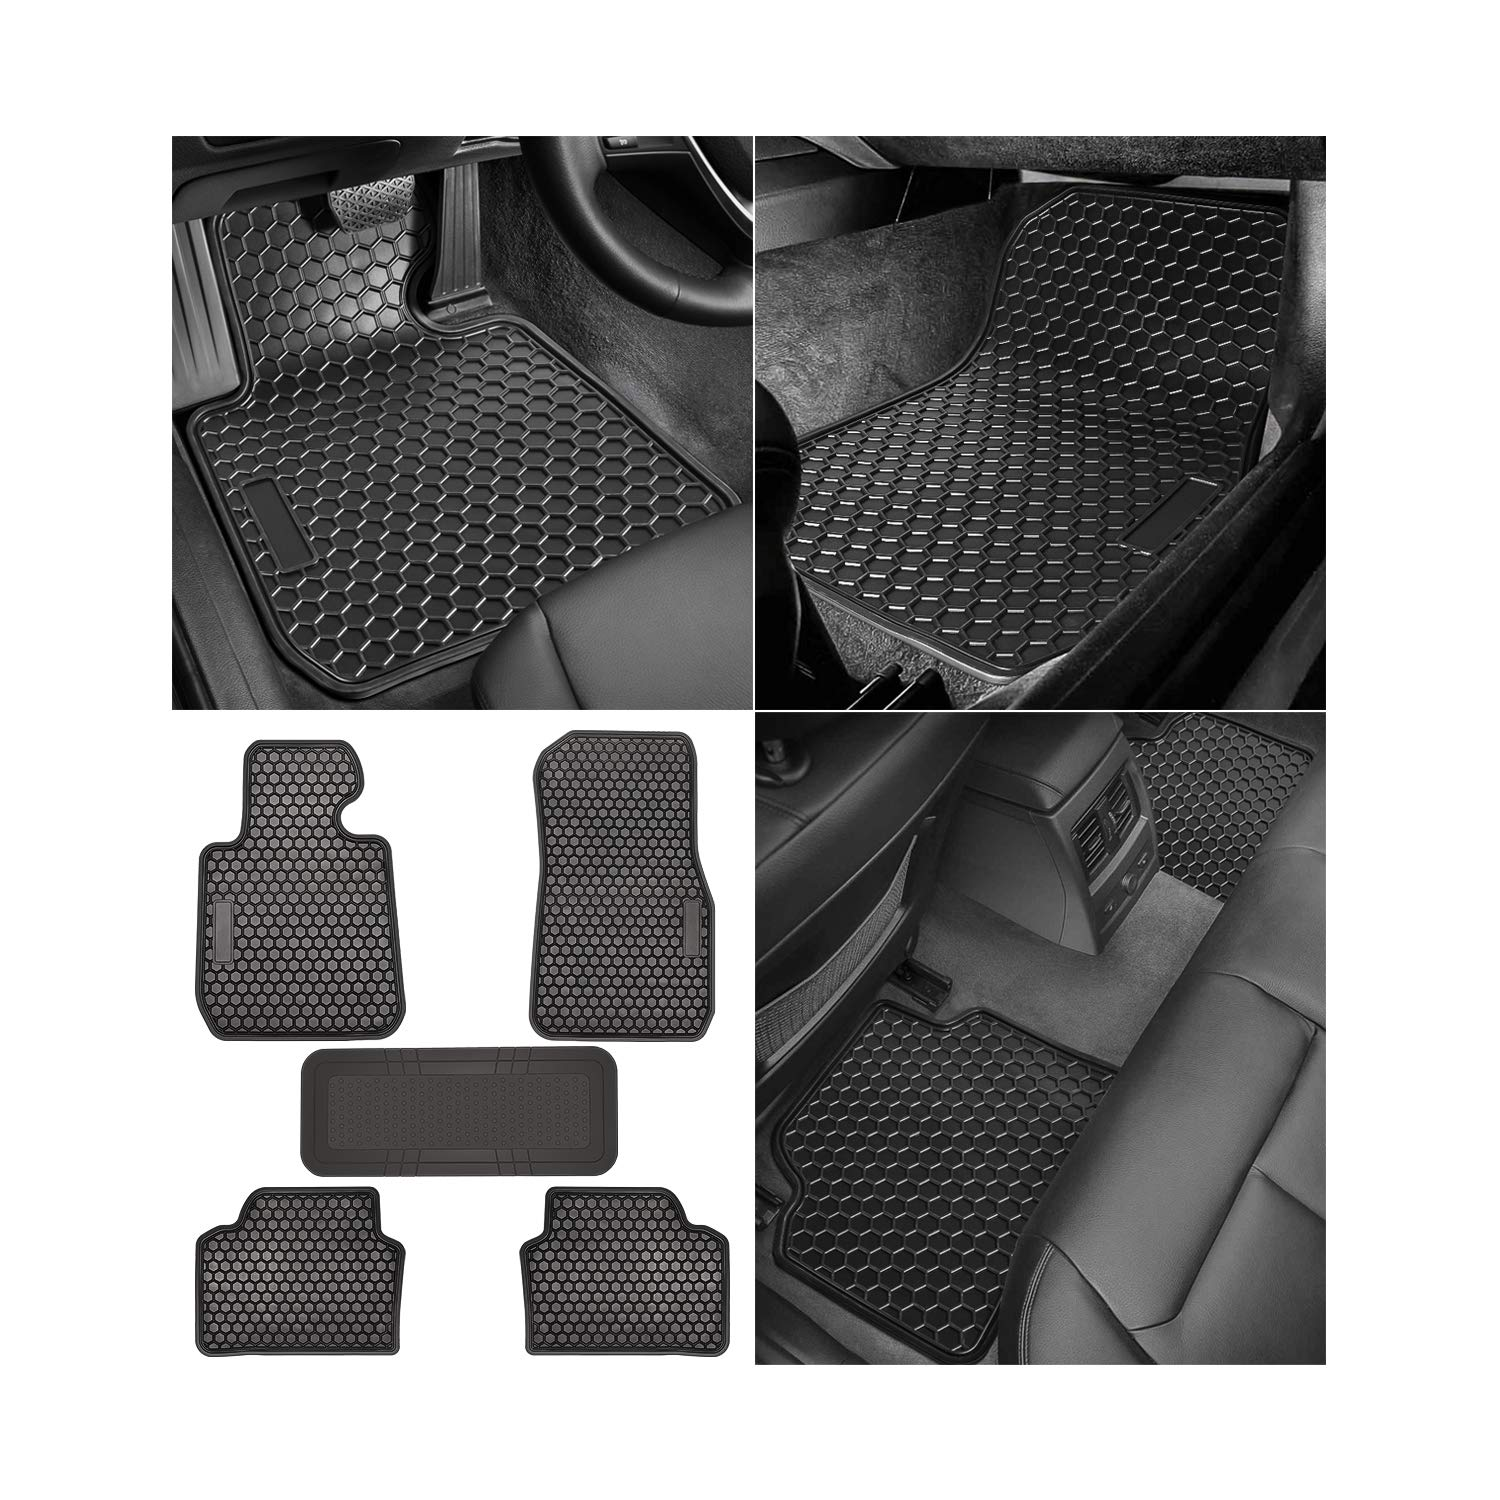 Pack of 5 Bonbo Floor Liner Mats for Nissan Rogue 2014-2019,Custom Fit,Front and Rear Seat Floor Mats,Heavy Duty Rubber,Odorless,All Weather Guard